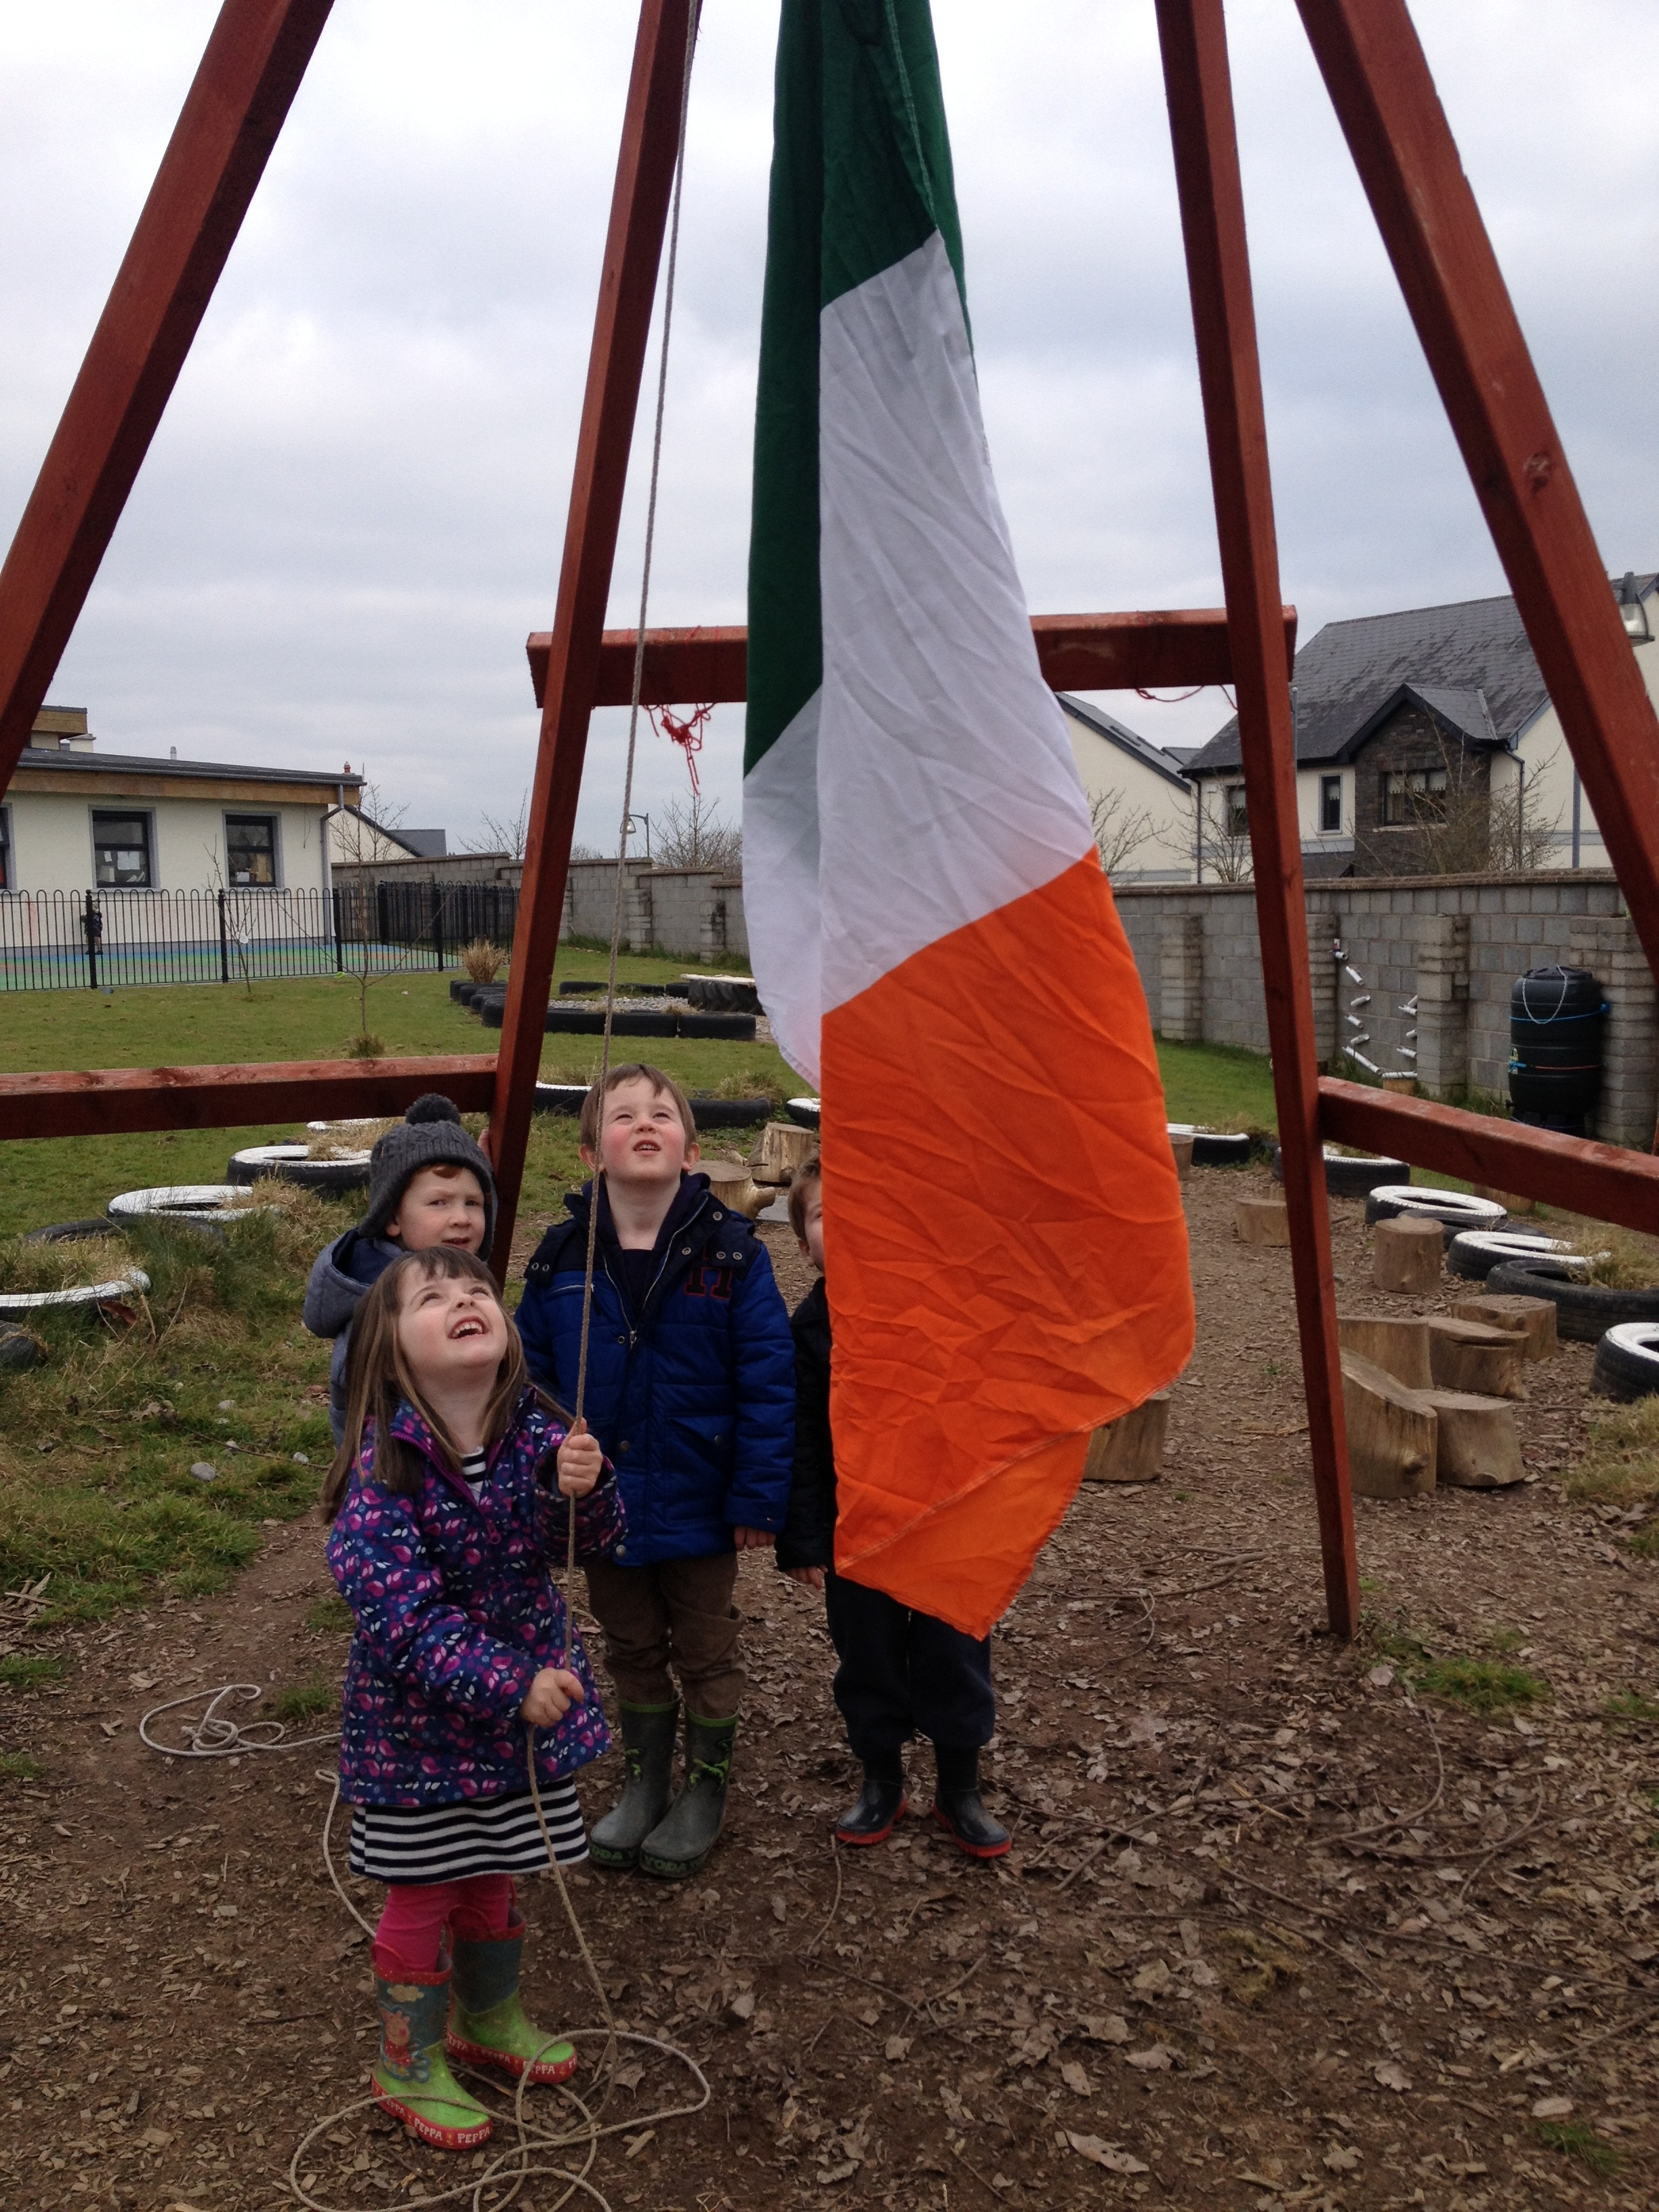 St Patrick's Day continues at Crawford Childcare